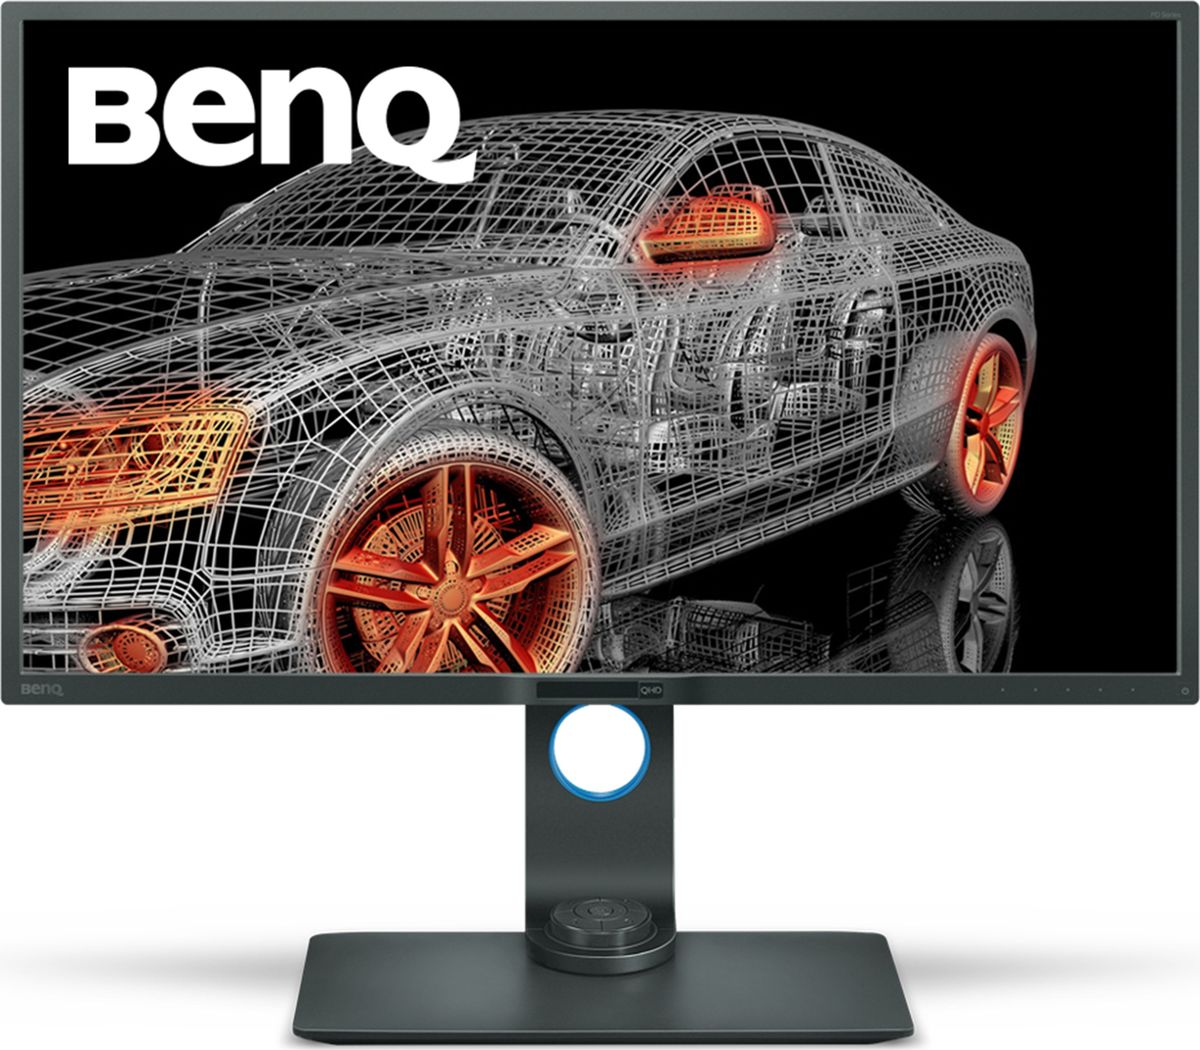 BenQ PD3200Q, Grey монитор9H.LFALA.TBEColor: Glossy Black; Size: 32W; Resolution: 2560x1440; Display Area(mm): 708.4x398.5; Brightness ( typ.): 300 nits; Contrast ( typ. ): 3000:1(DCR: 20M:1); Viewing angle (L/R;U/D) (CR>=10): 178/178; Response time(GtG): 4ms; MPRT (Motion Picture Response time): No; Display Colors: 16.7million; Color Gamut: 100% sRGB; Input connector: D-sub/DVI/HDMI/DP/USB 2.0x2 3.0x2; Power consumption (On mode): 97W; Power saving mode: 0.5W; Senseye: Senseye3; AMA: Yes; PerfectMotion: No; Win8: Yes; HDCP: Yes; Speaker: 5Wx2; VESA Wall Mounting: 100x100mm; Signal cable: VGA, DVI, DP, HDMI, USB 3.0; Others: No; TCO 7.0; AMVA+ Panel; LED Backlight; Height adjustment, Flicker-free, Low blue light, DualView, Darkroom mode, KVM, Technicolor